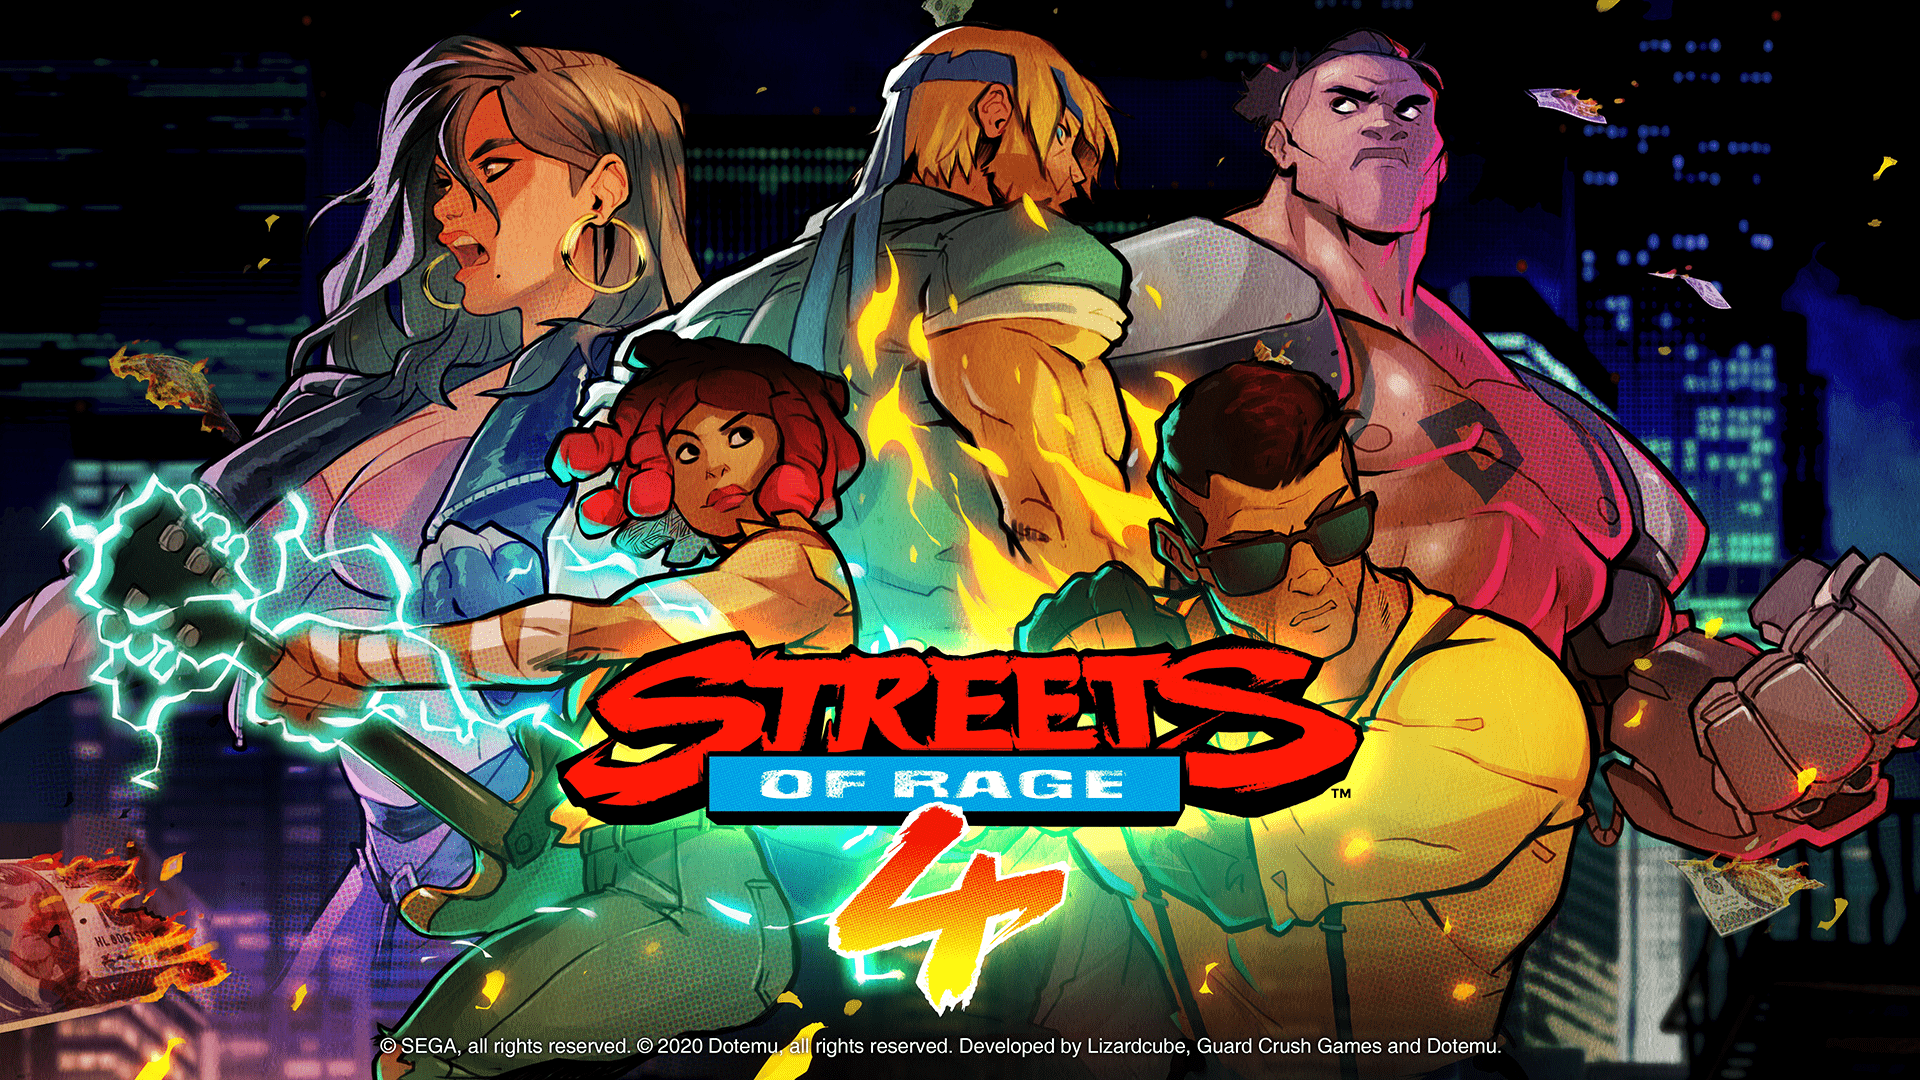 Streets of Rage 4 launches April 30